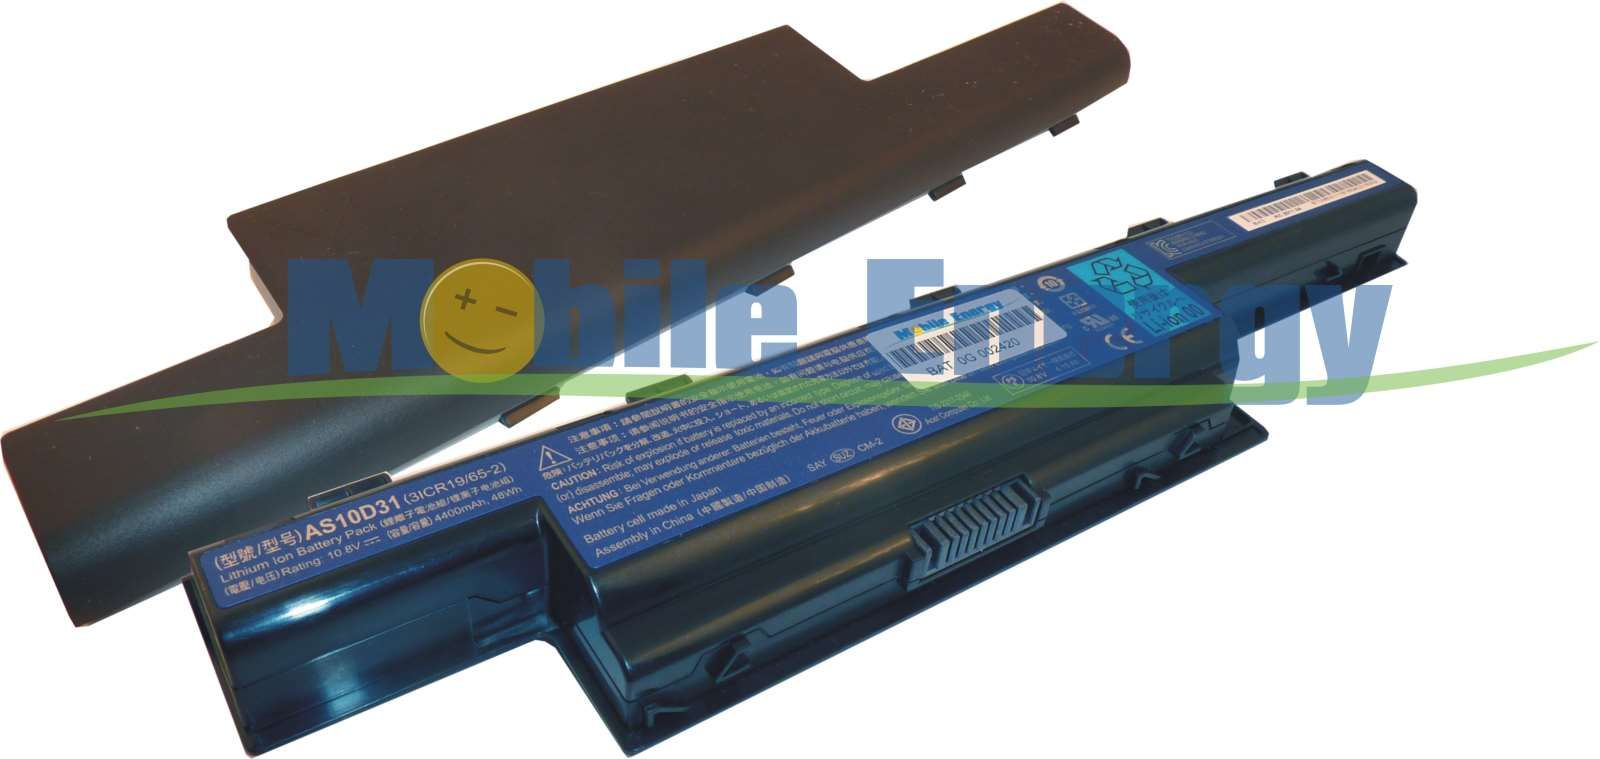 Mobile-Energy Baterie ACER Aspire 4551 / 4741 / 4771 / 5741 / Tr